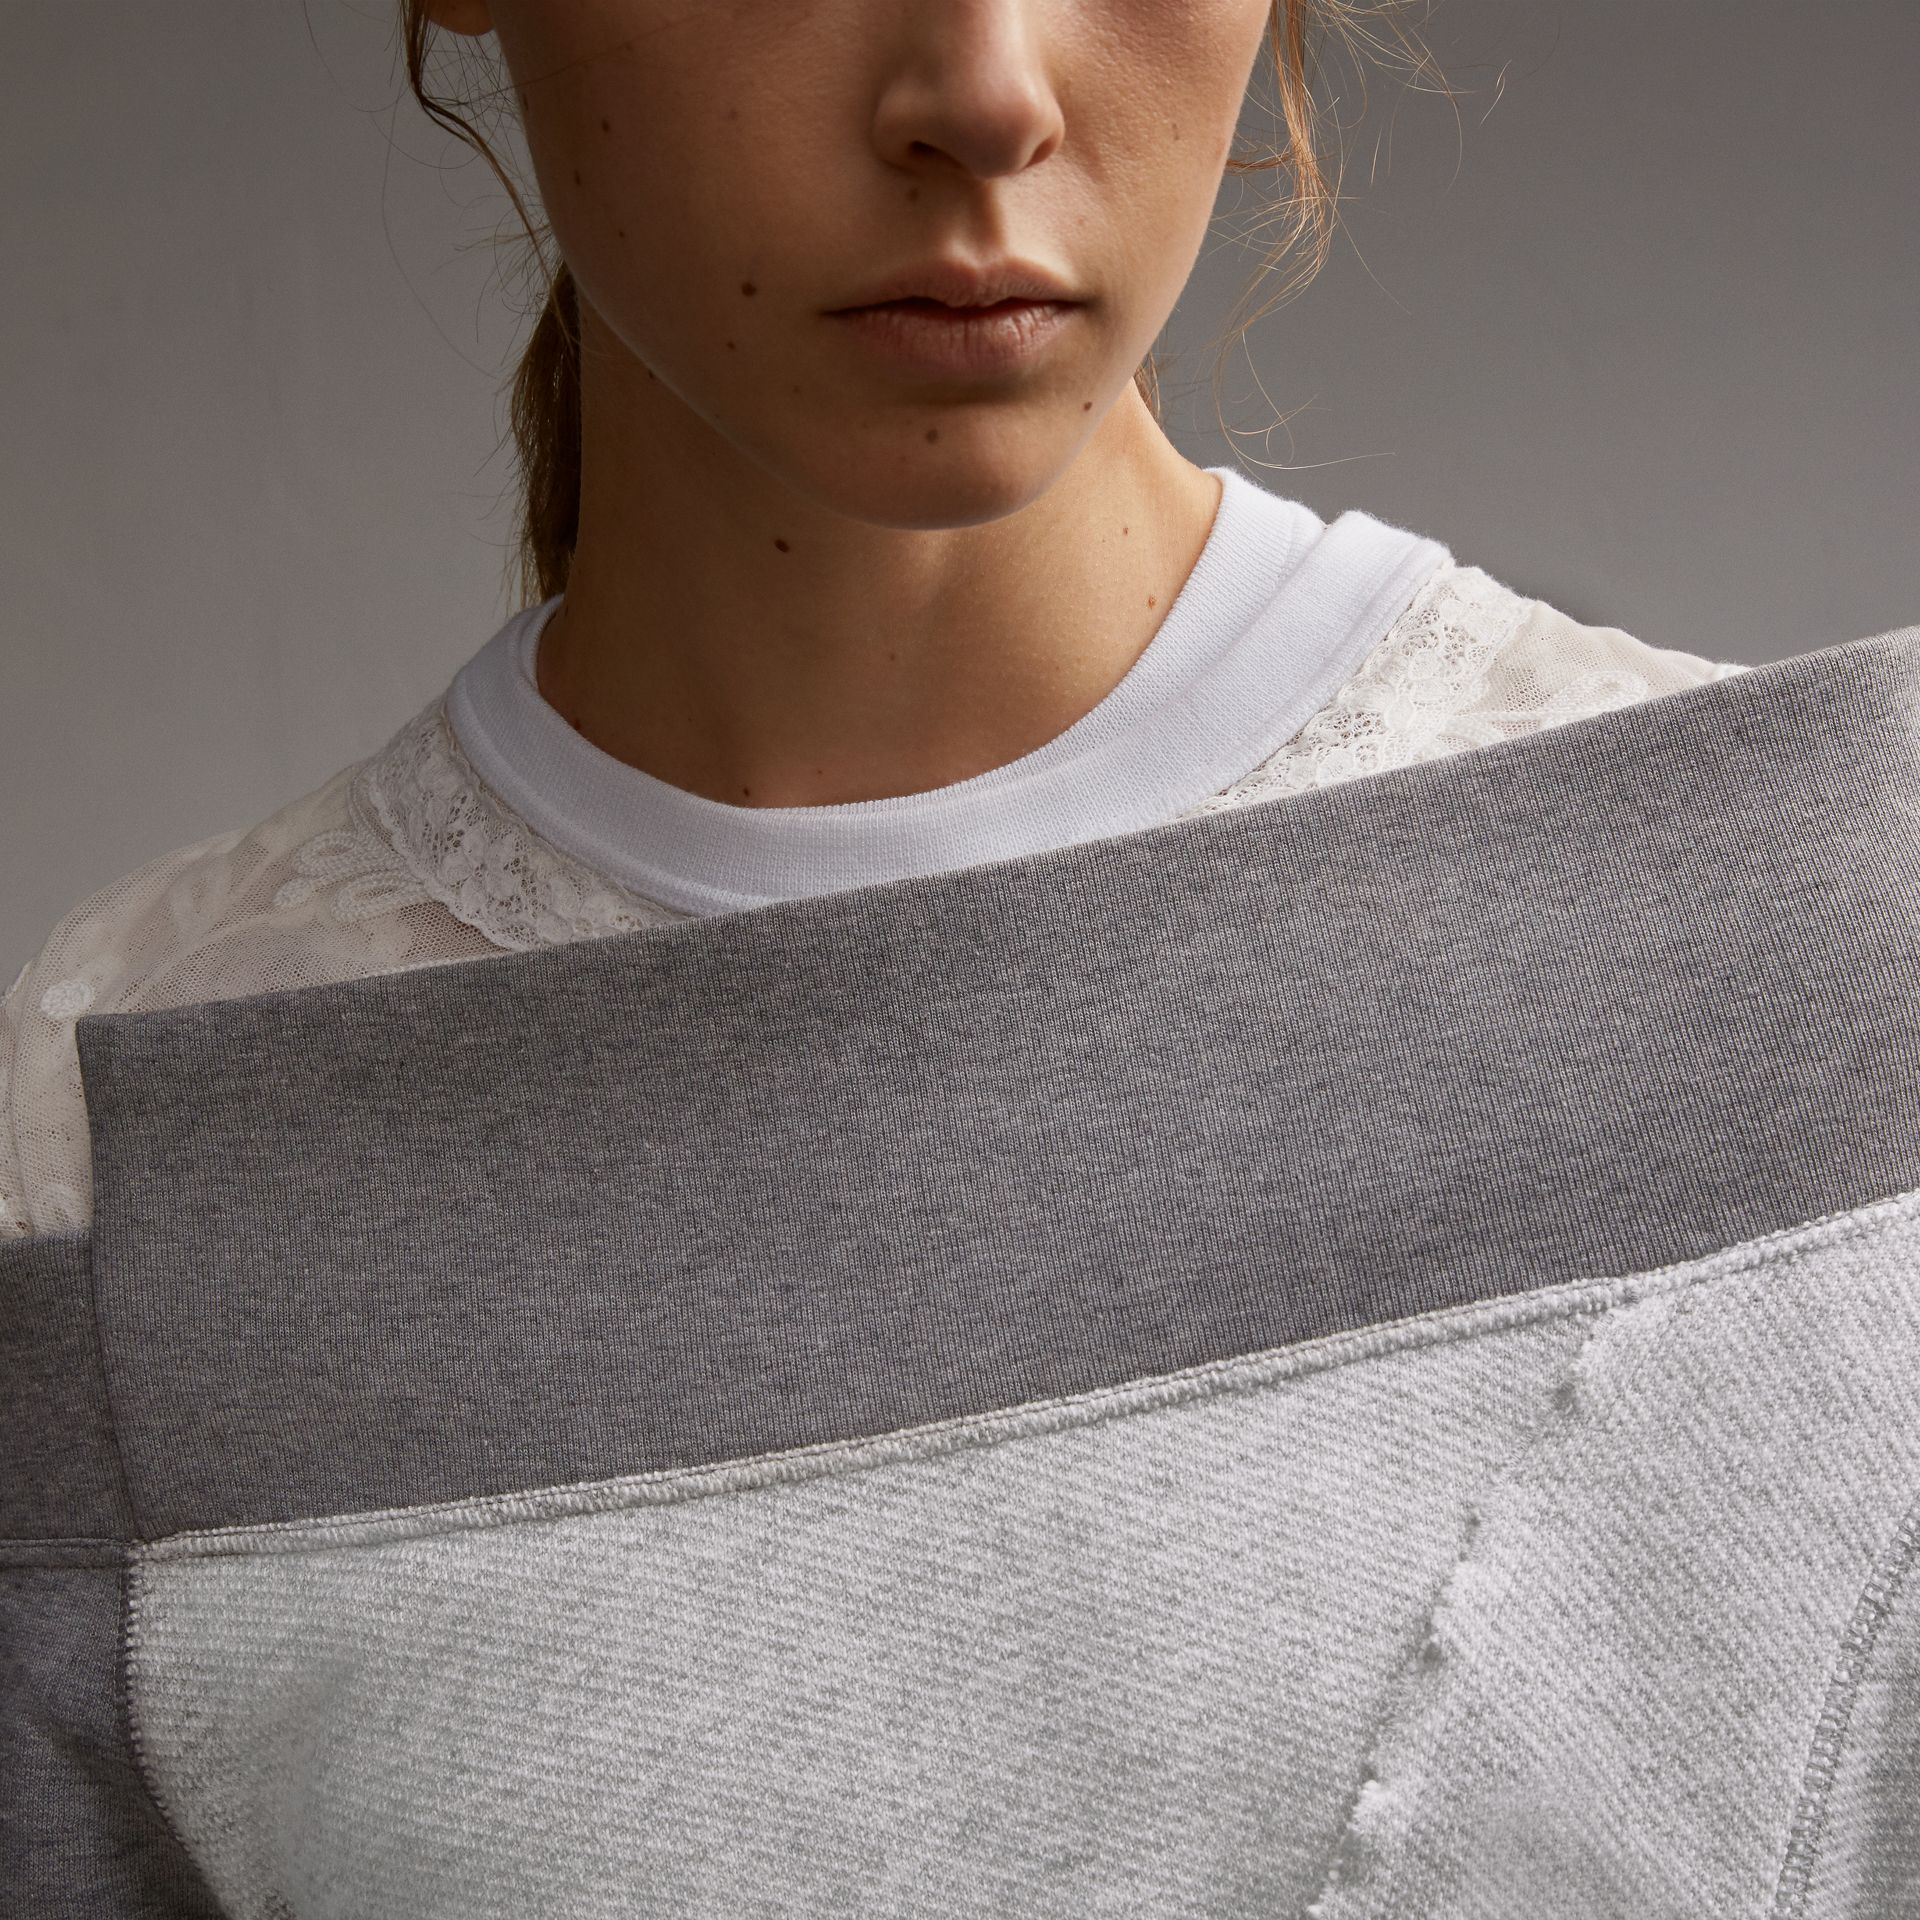 Sculptured-sleeve Seam Detail Sweatshirt in Grey Melange - Women | Burberry - gallery image 5